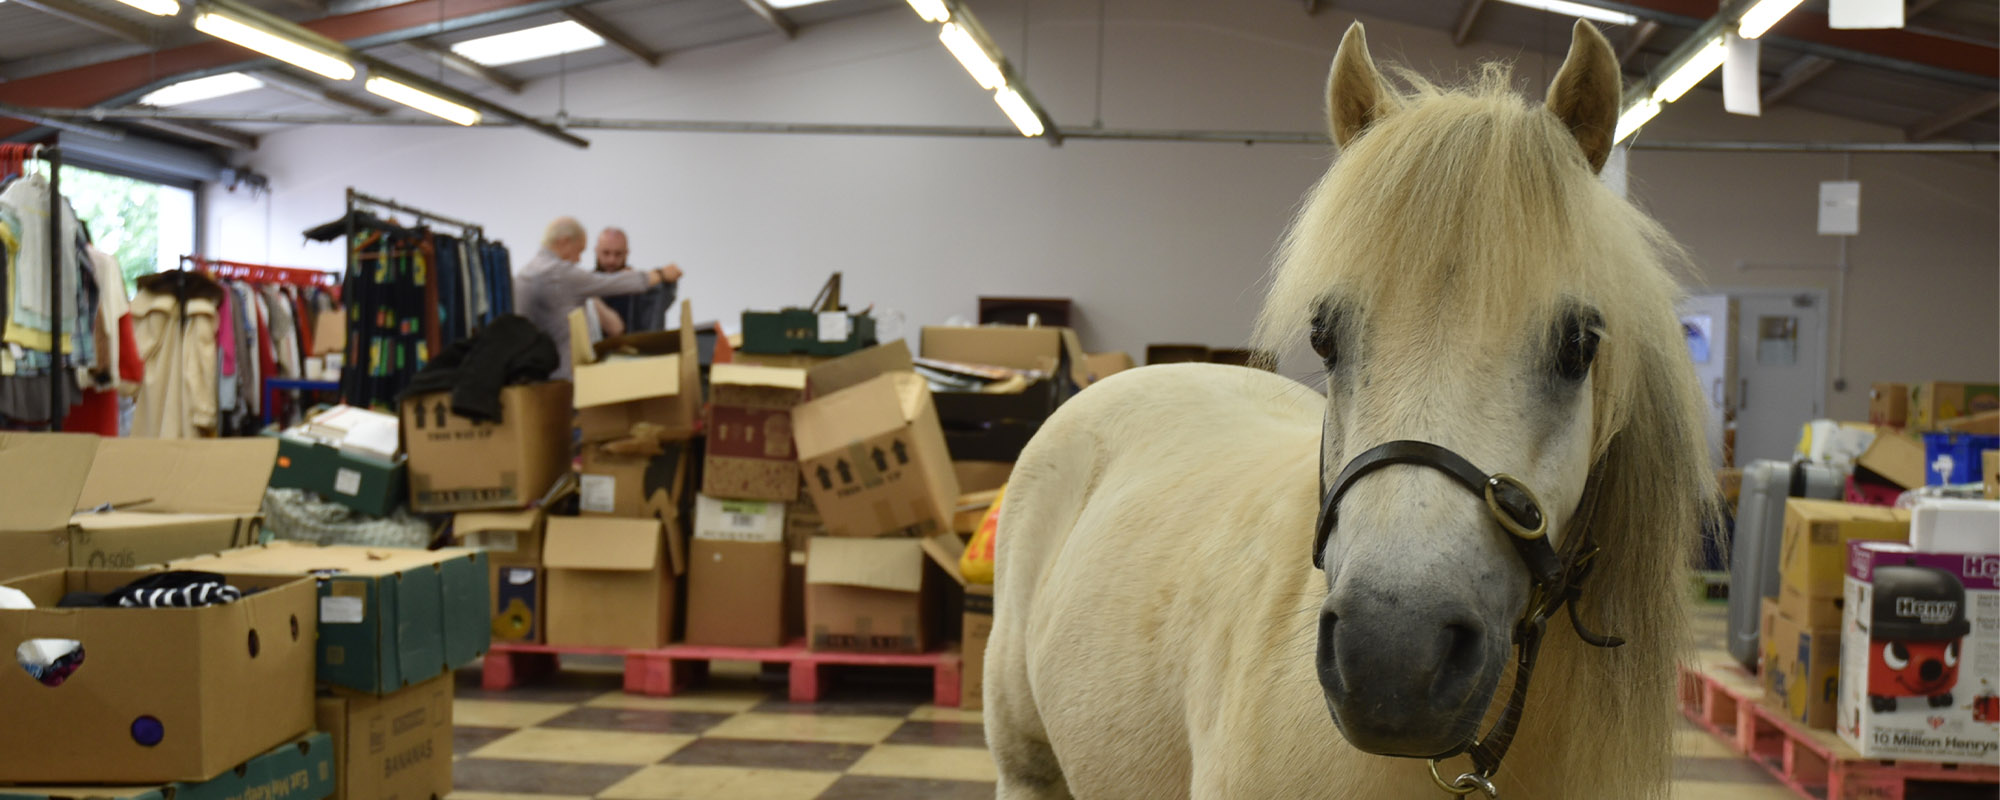 horses-ponies-you-help-rescue-this-year-joker